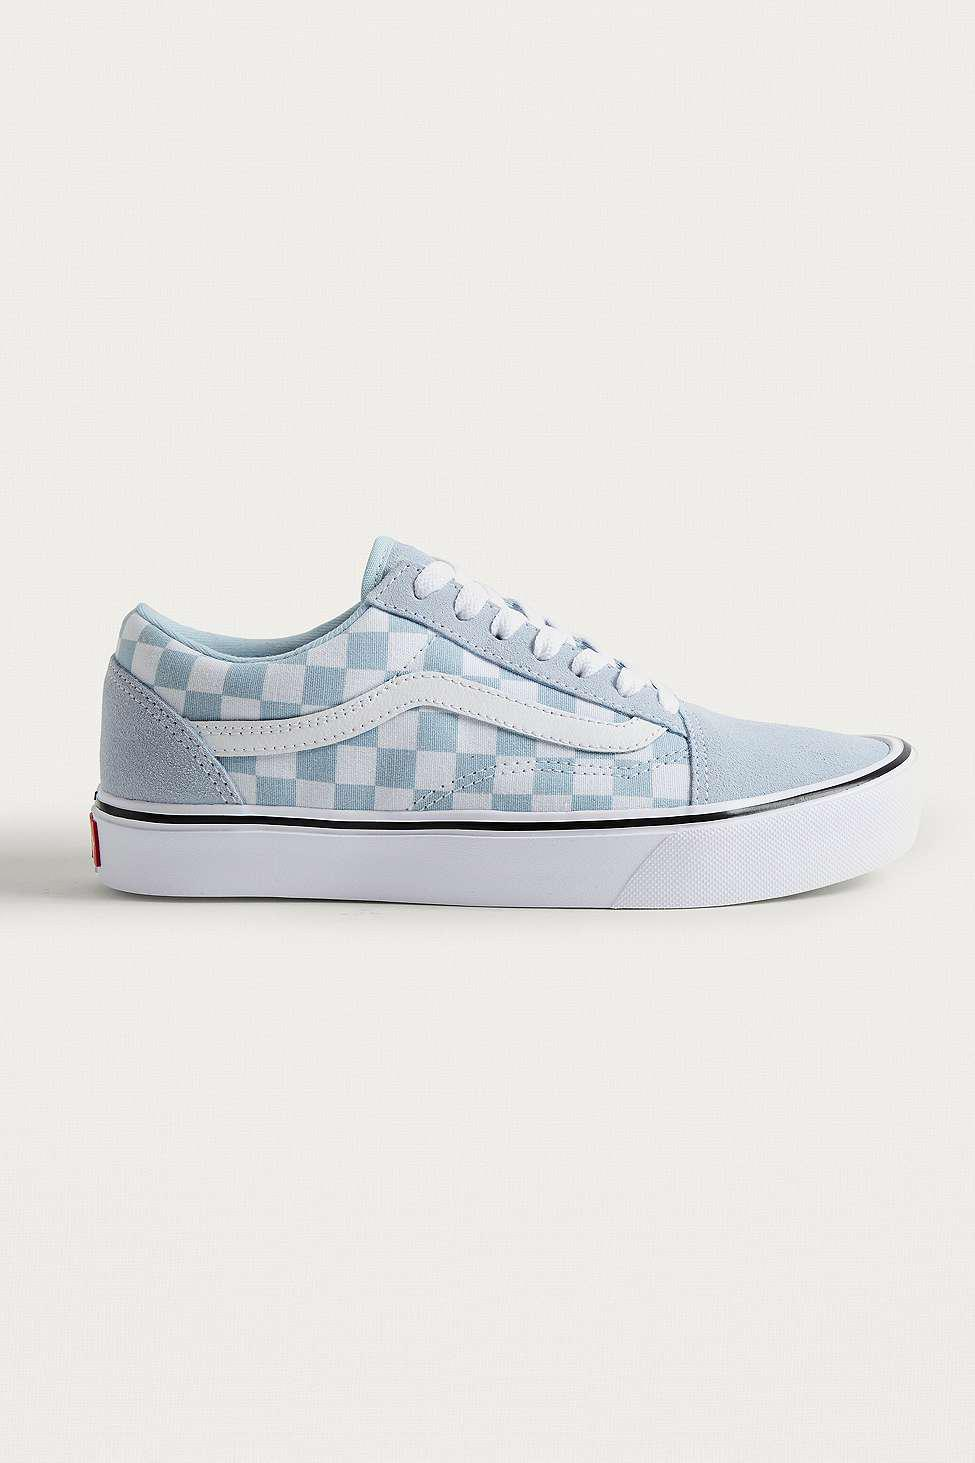 98be6f461c3d7e Vans Old Skool Light Blue Checkerboard Trainers - Womens Uk 7 in ...